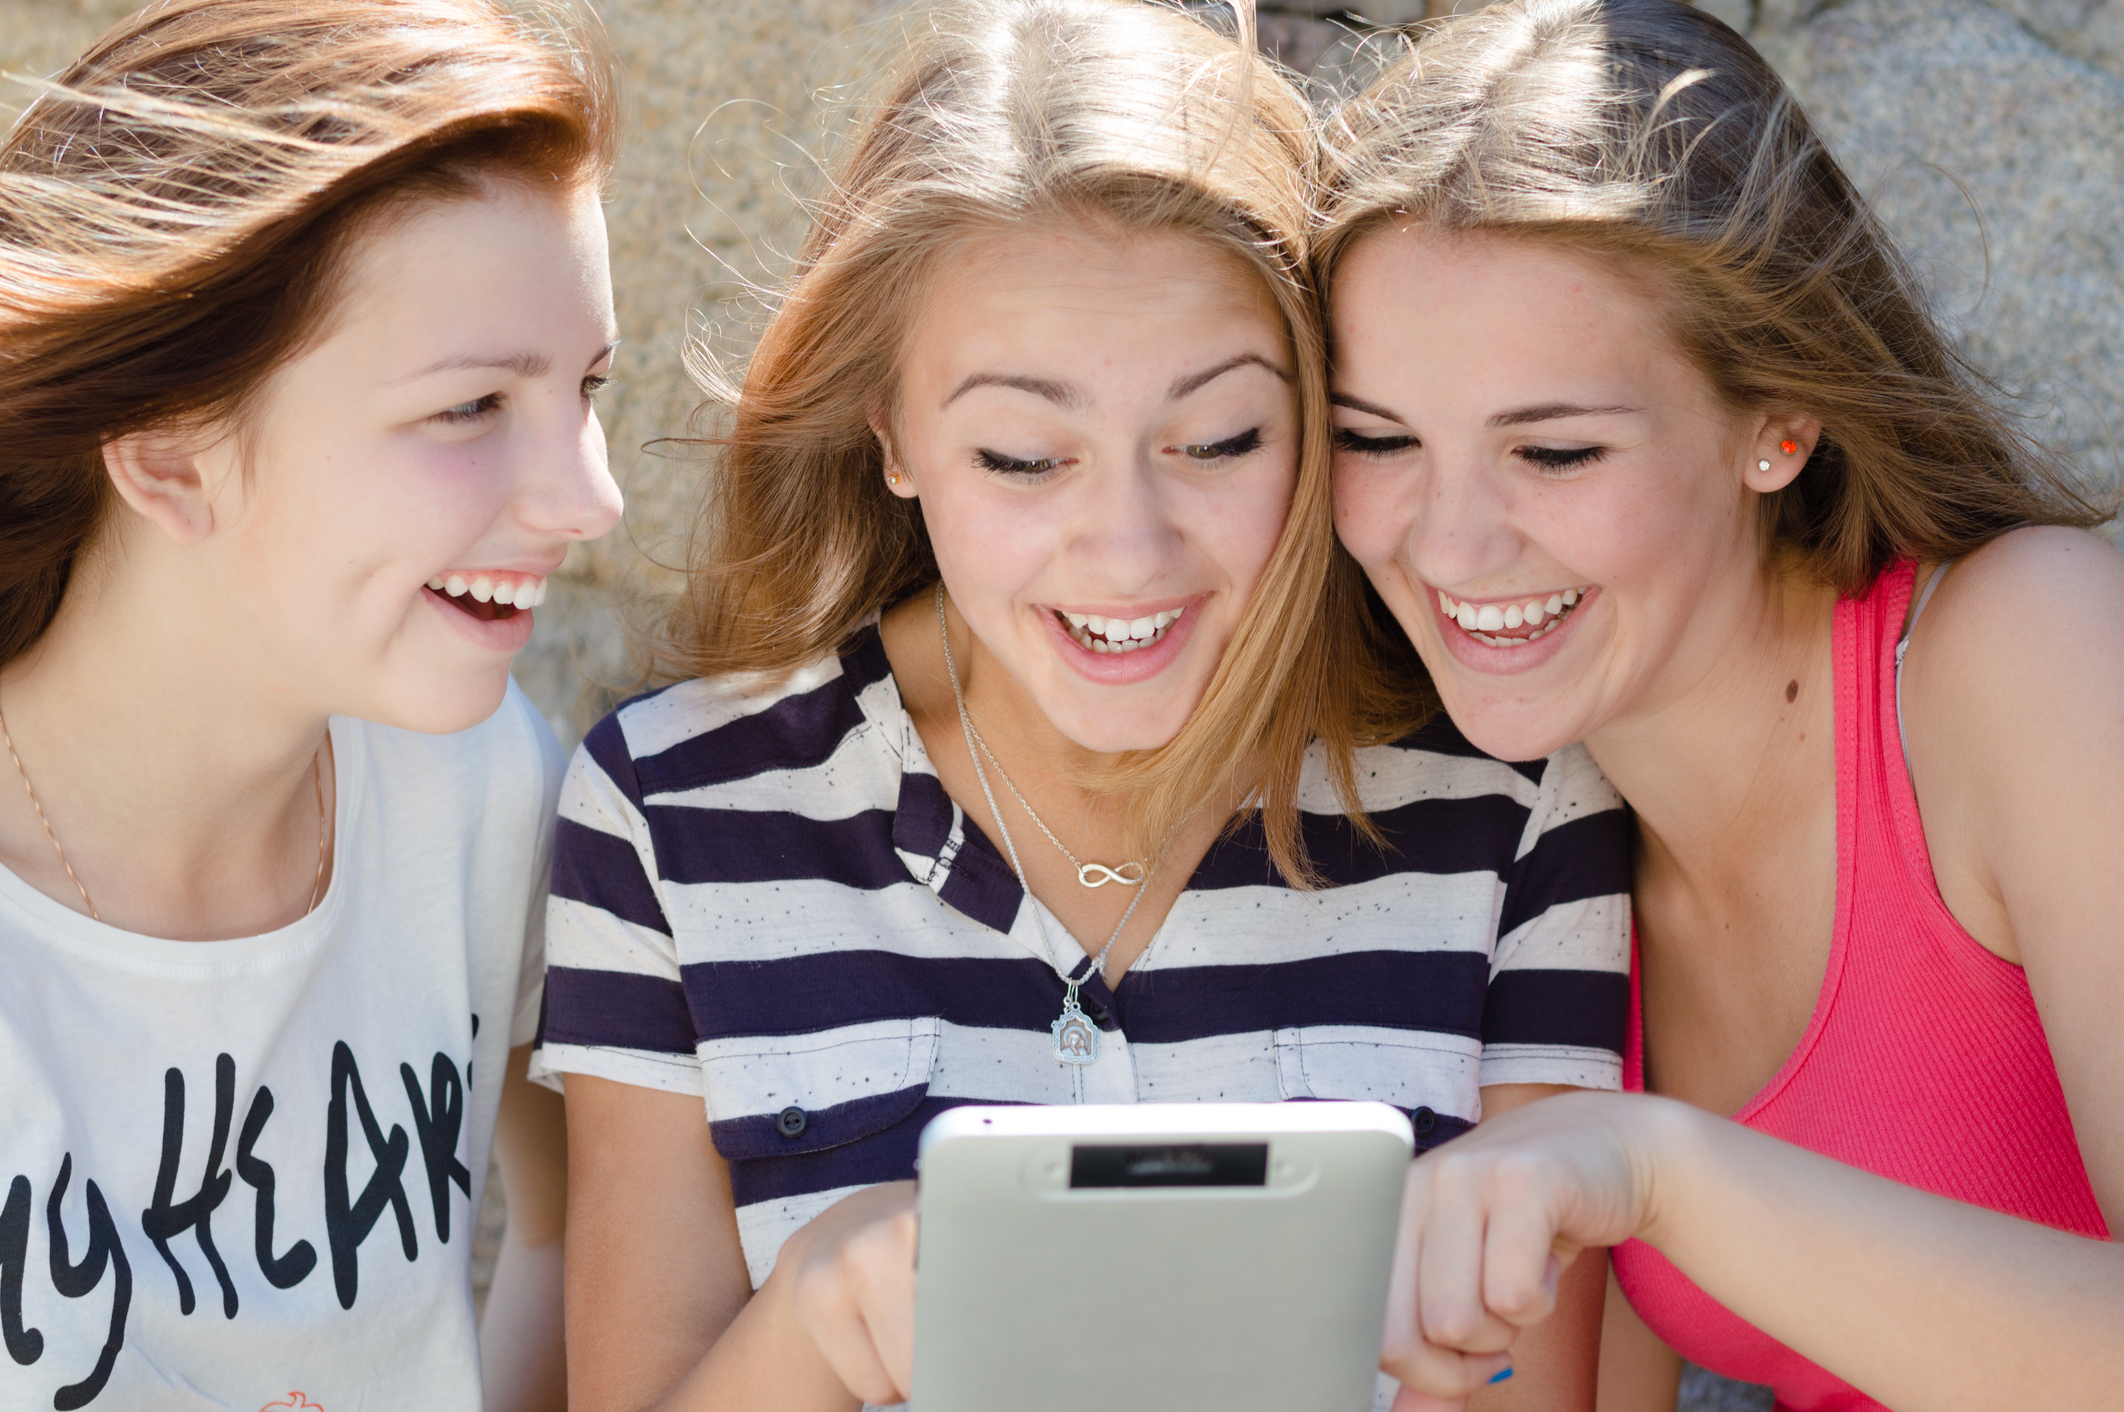 A few Smart Girls checking out the latest in news and recipes for teenage vegetarians (I mean, what else would they be doing?!)